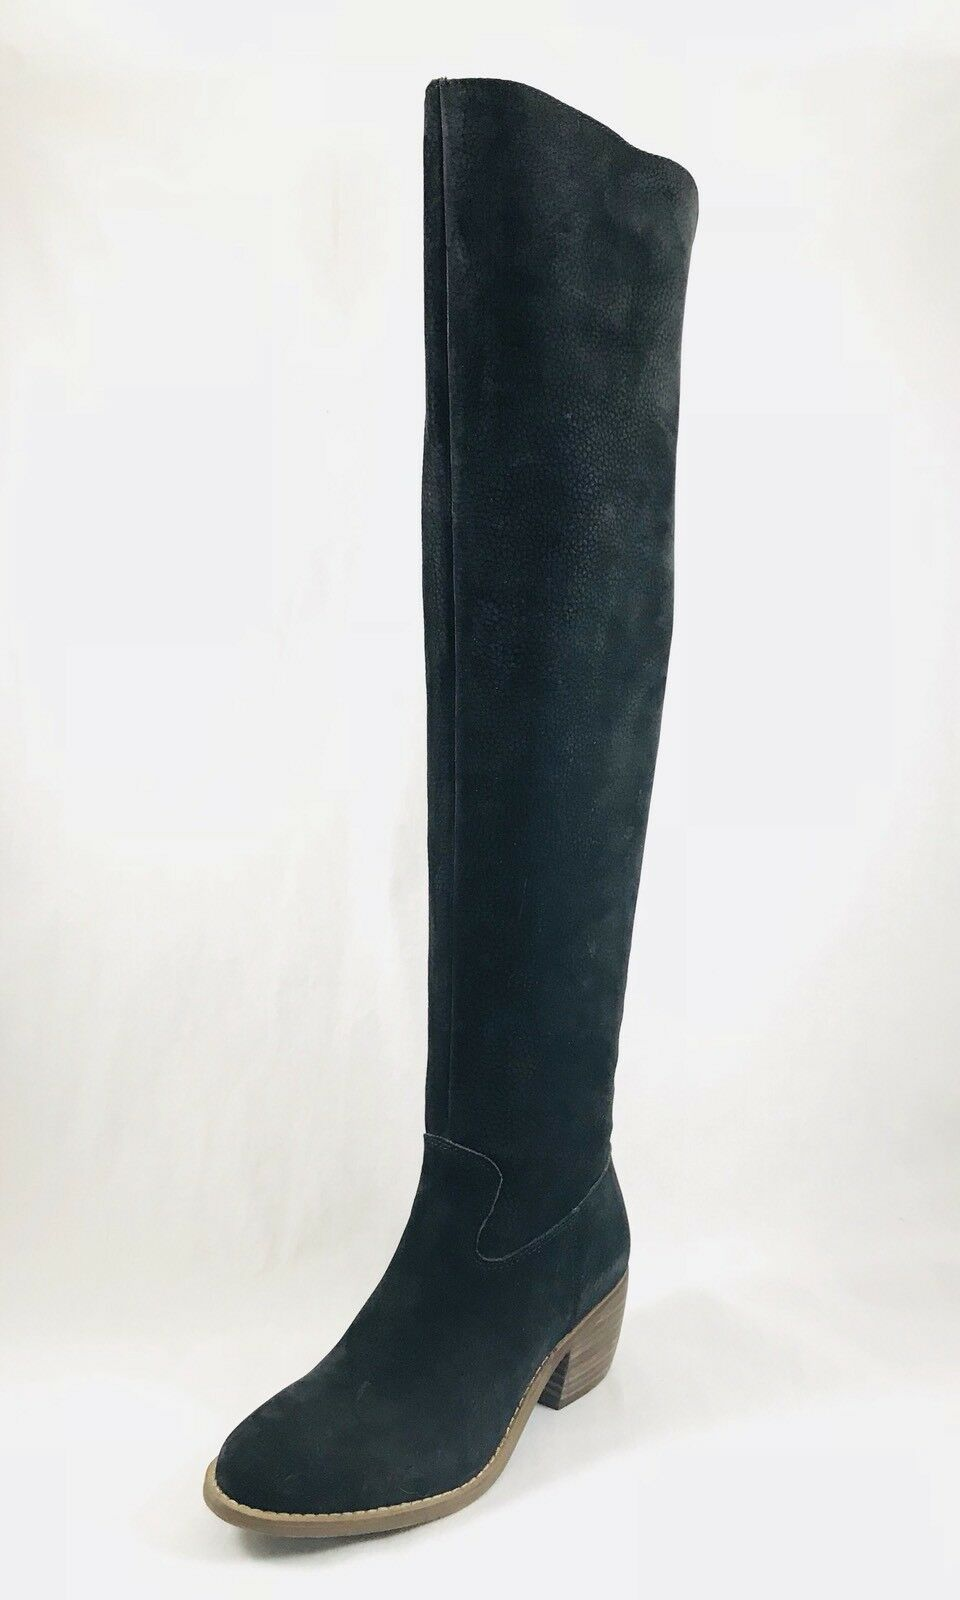 Lucky Brand Khlonn Womens Round Toe Leather Black Over the Knee Boot Size 6